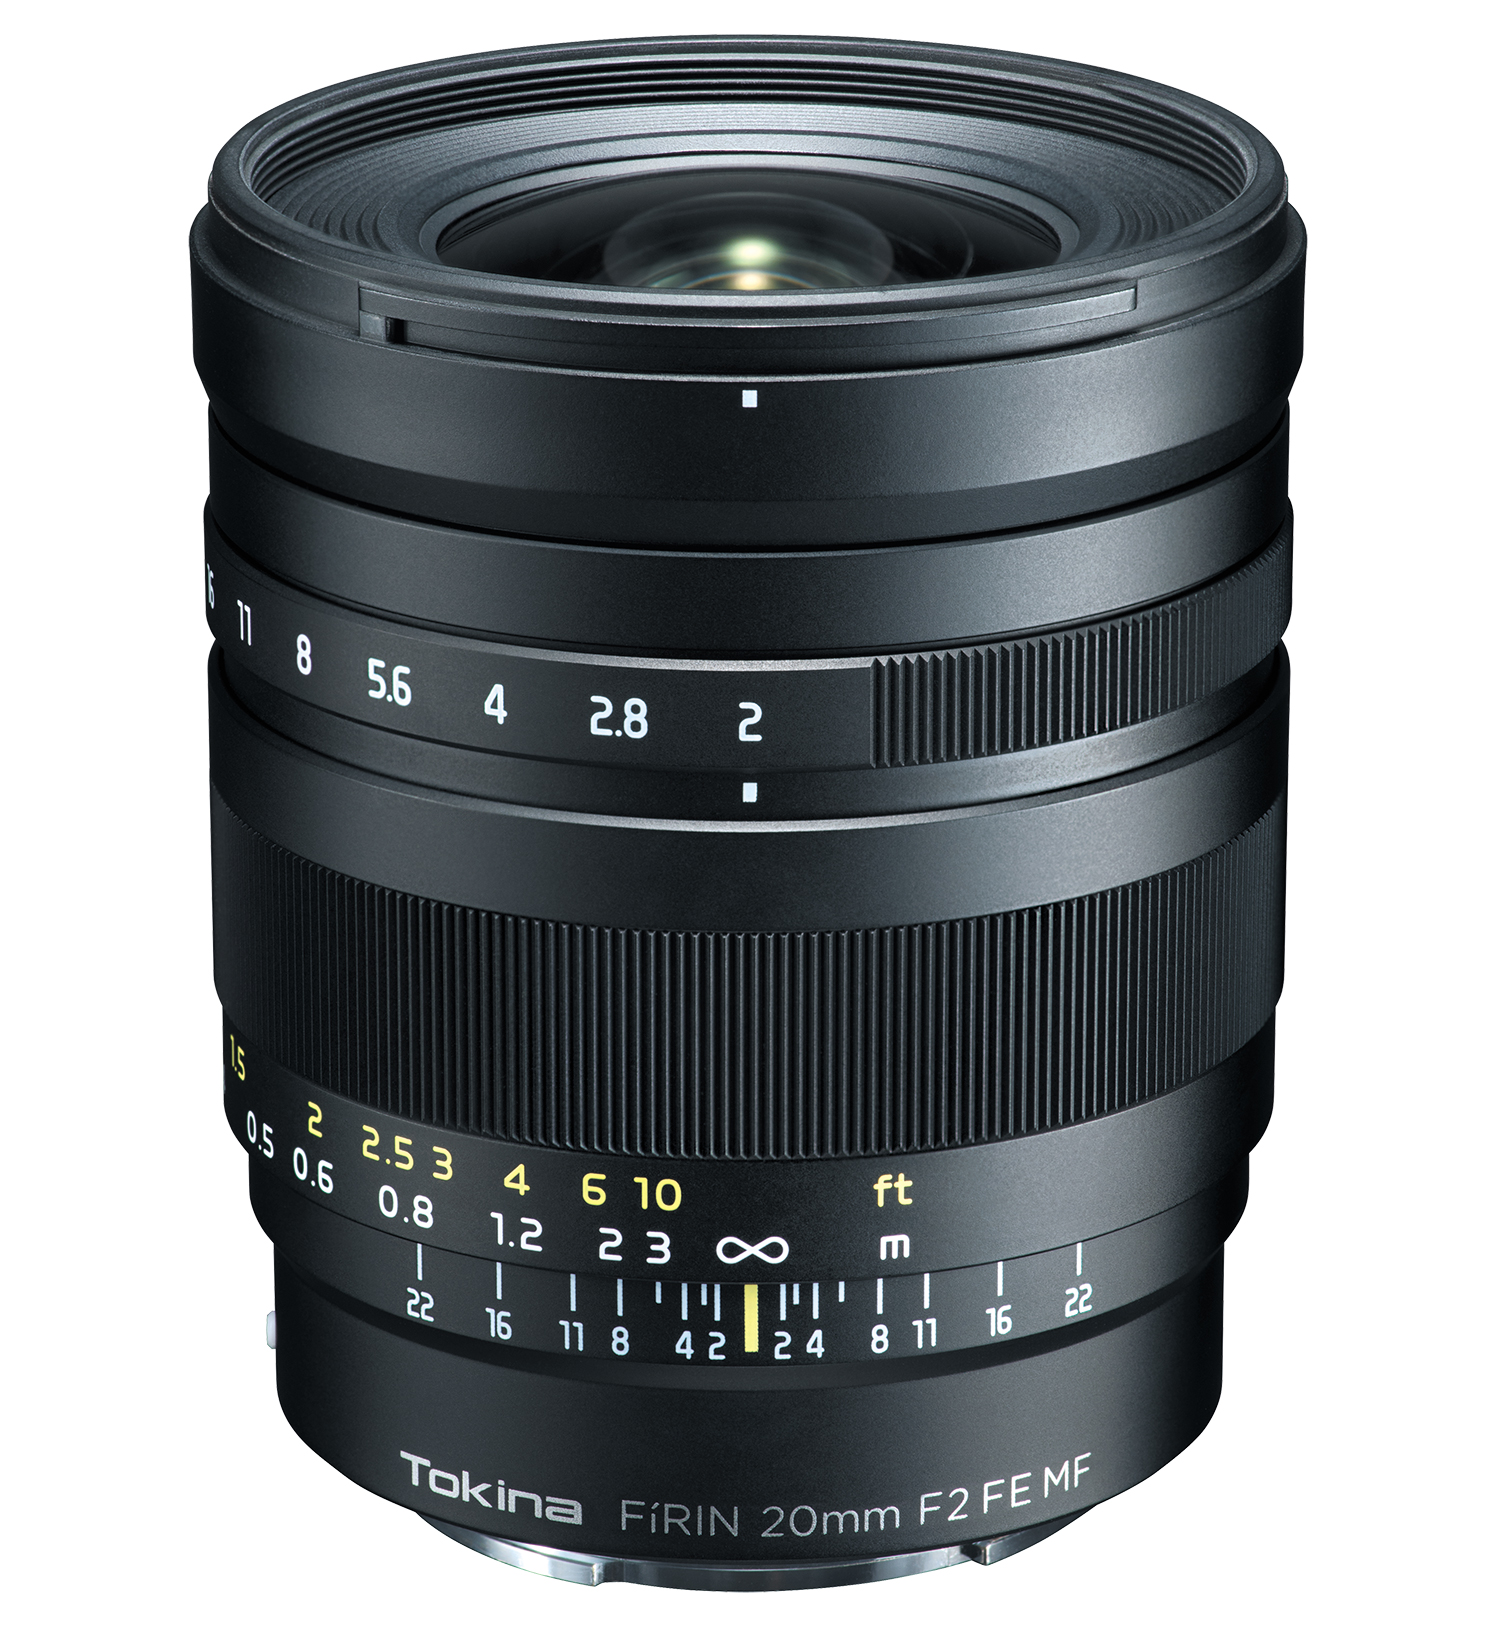 http://www.tokina.co.jp/camera-lenses/Firin_20mmF2FEMF.jpg